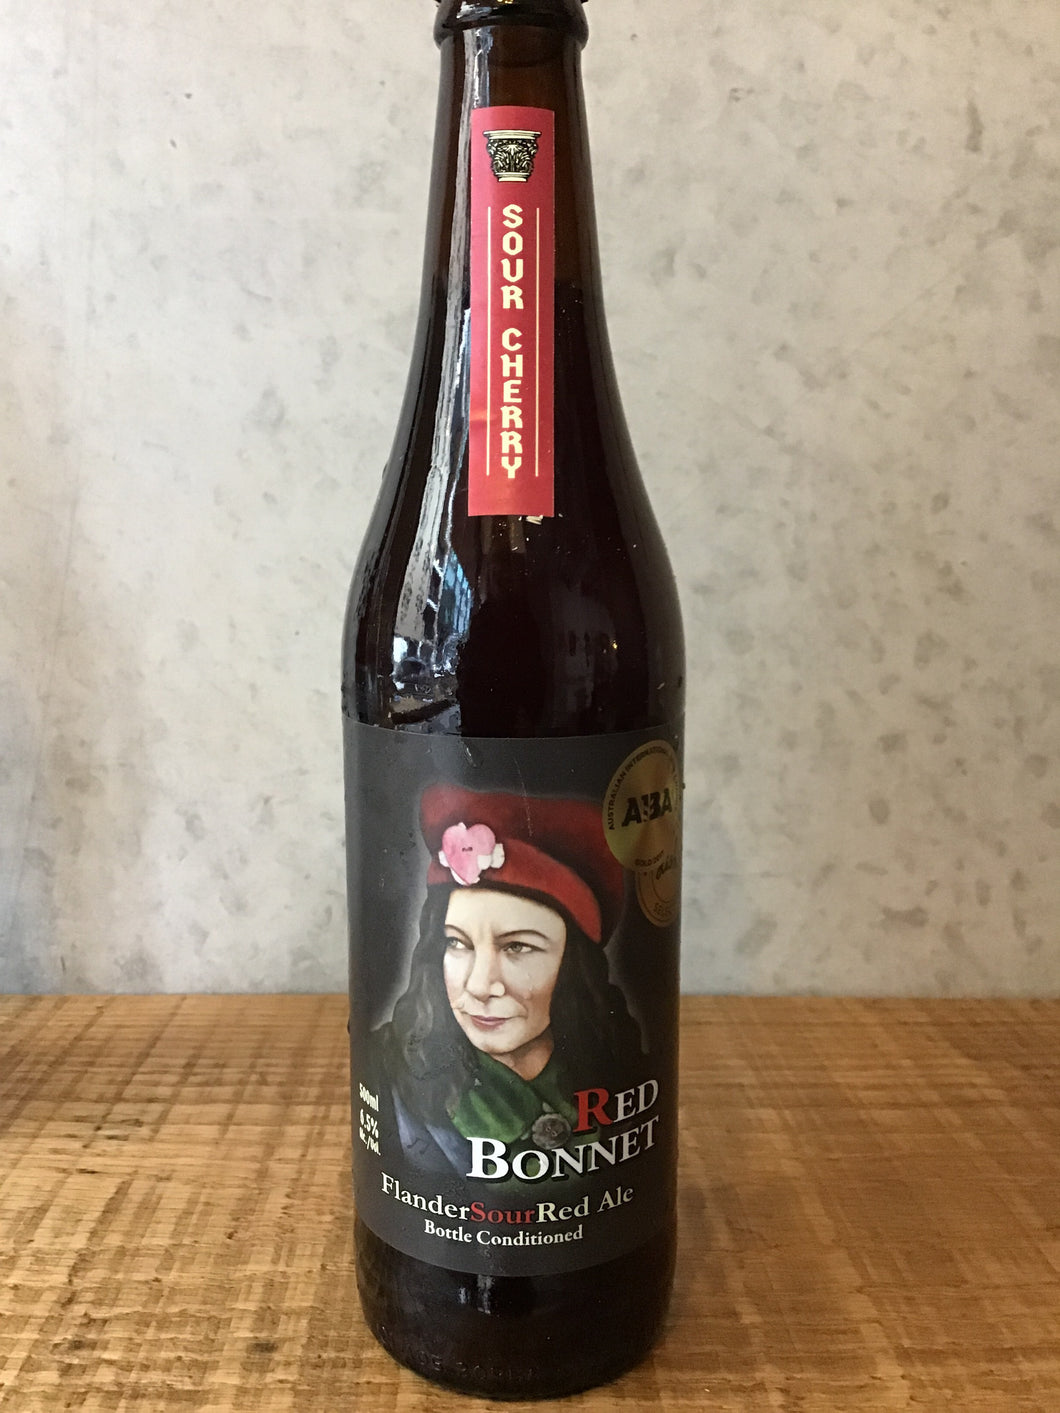 Craftwork Red Bonnet Sour Cherry 6.5% - Bottle Stop